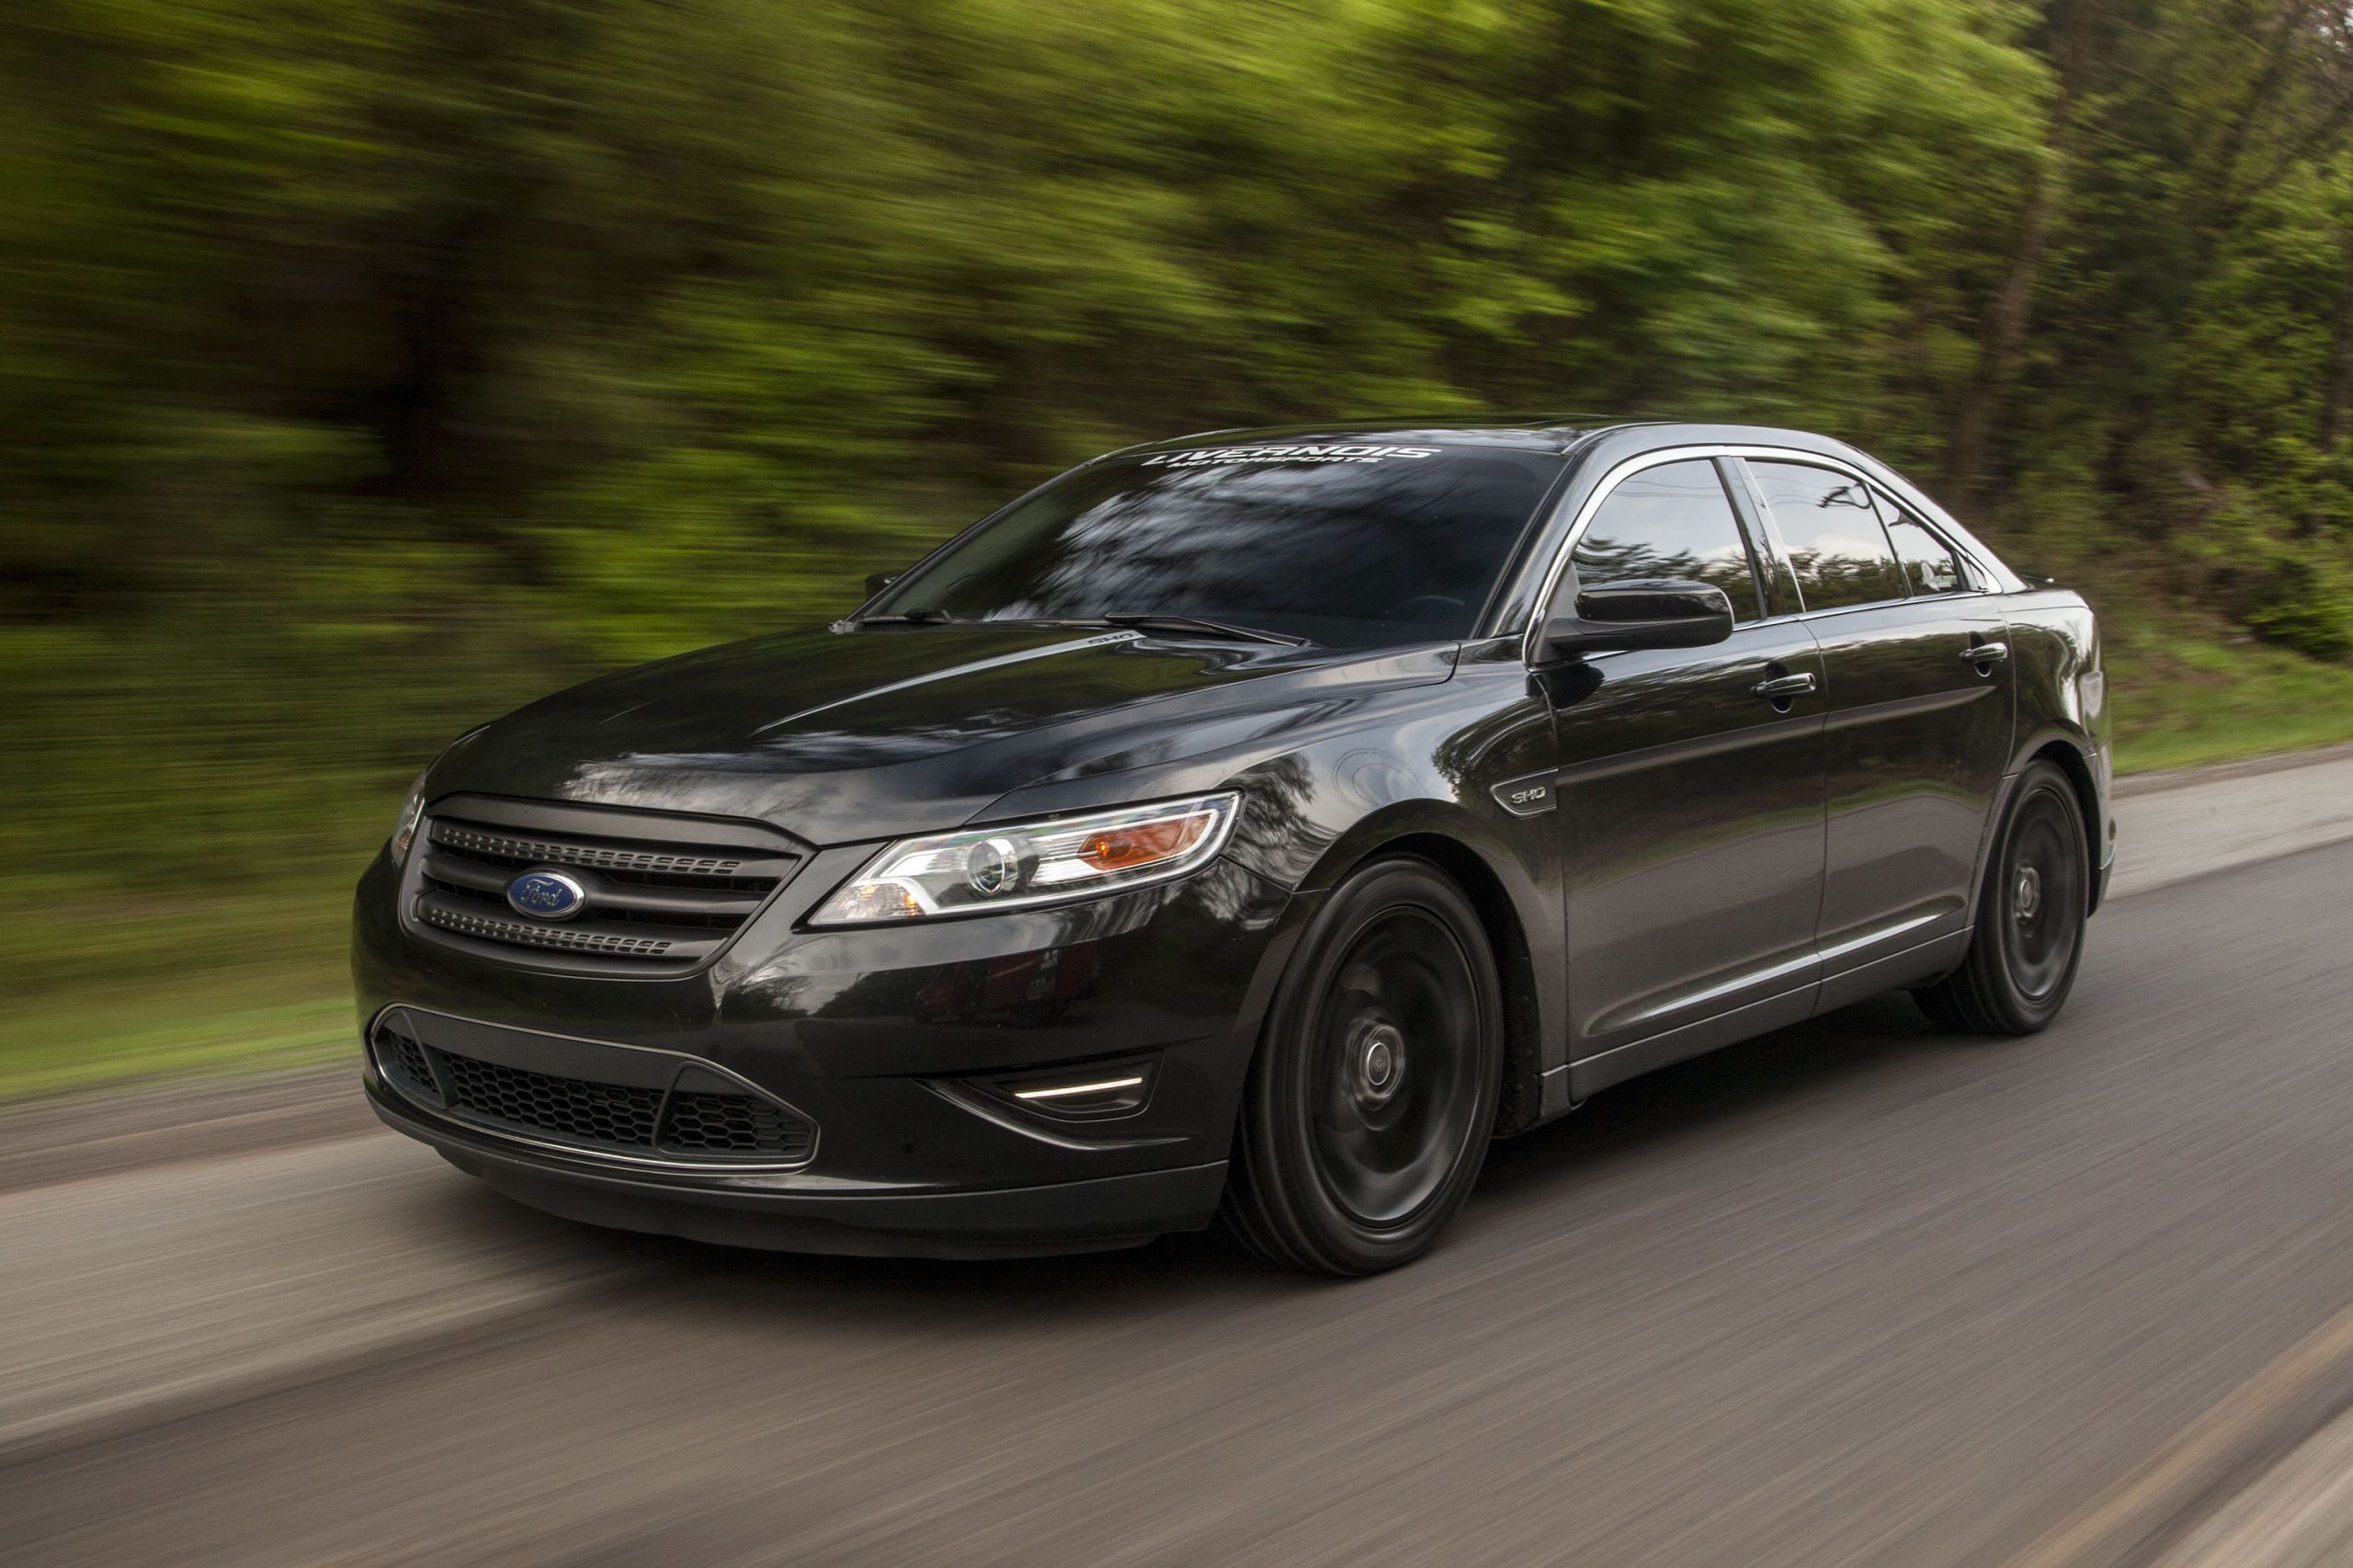 this is what a 550 hp taurus looks like rh roadandtrack com 2013 Ford Taurus Warranty 2013 Ford Taurus Warranty